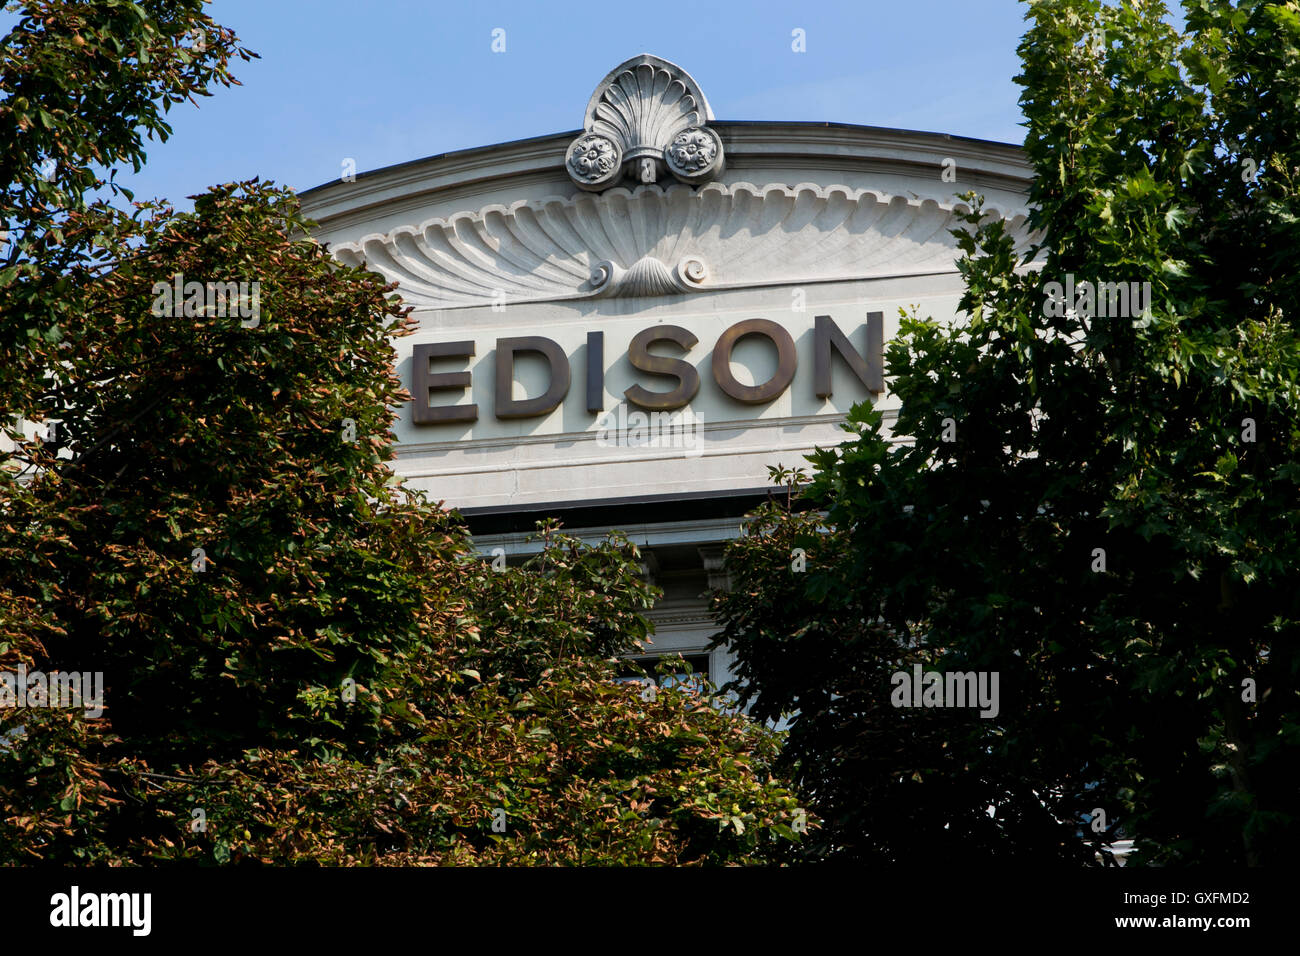 A logo sign outside of the headquarters of Edison S.p.A. in Milan, Italy on September 3, 2016. - Stock Image